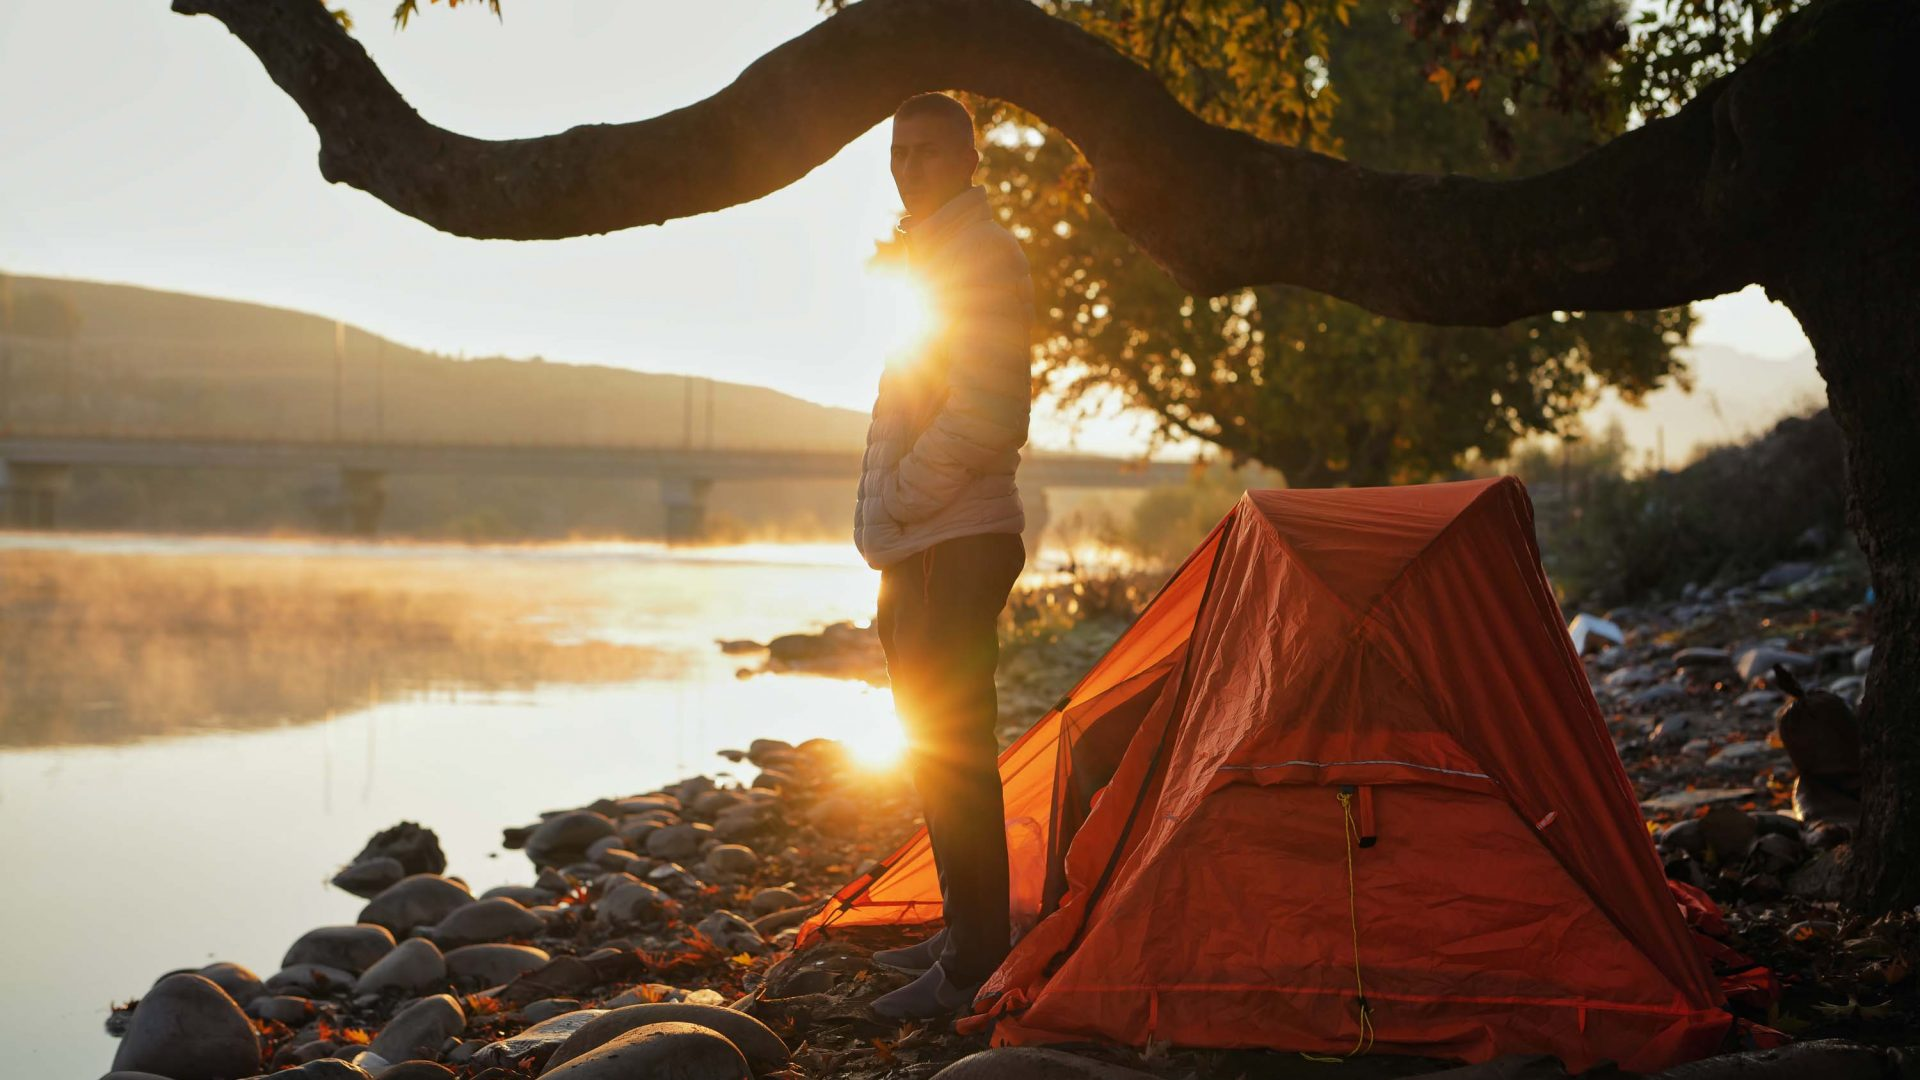 A man stands in the morning light alongside his tent, near a river.